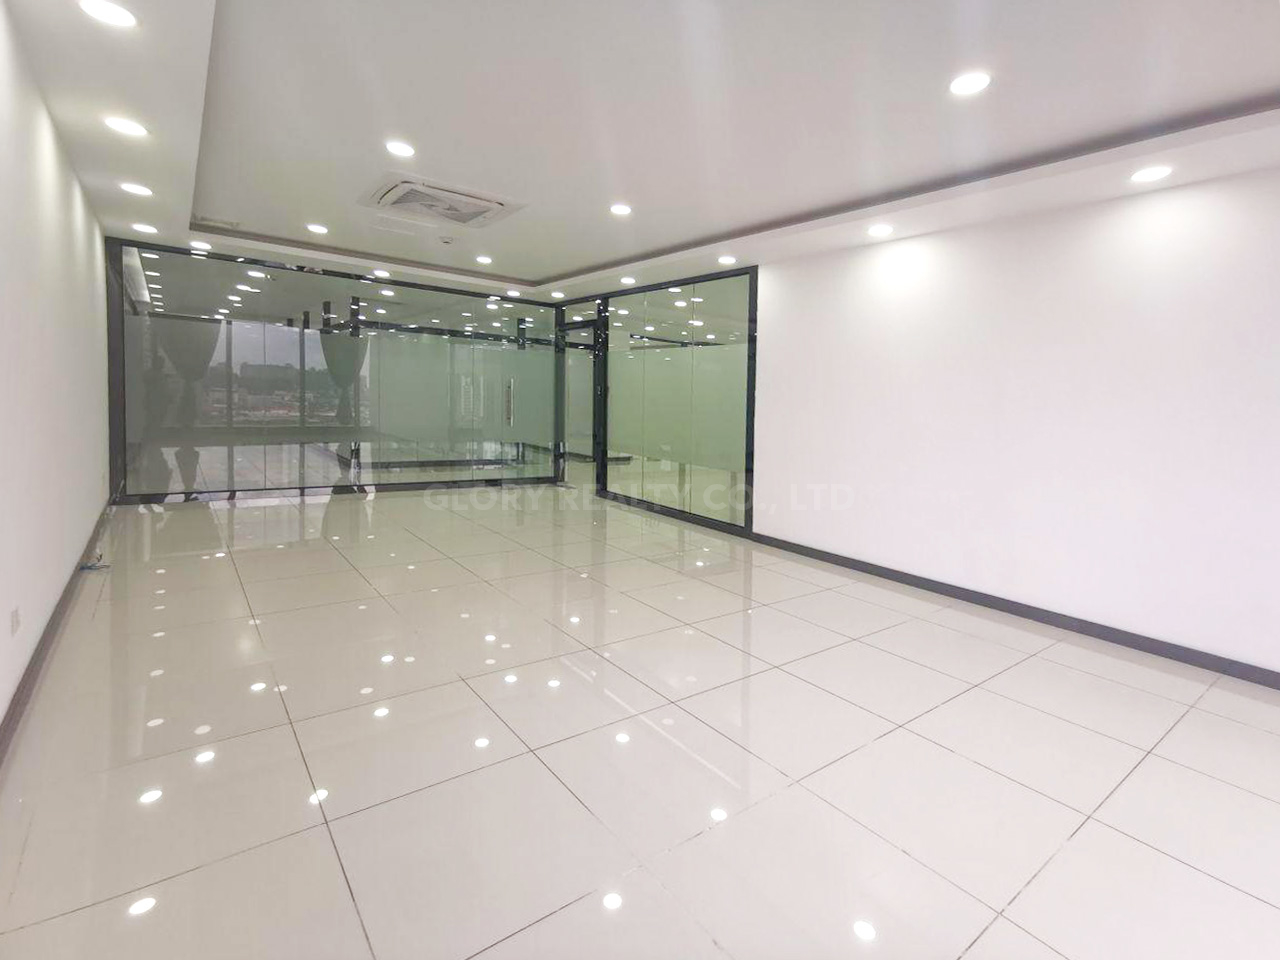 268 Sqm office space for rent in Sangkat Toul Tumpong 2